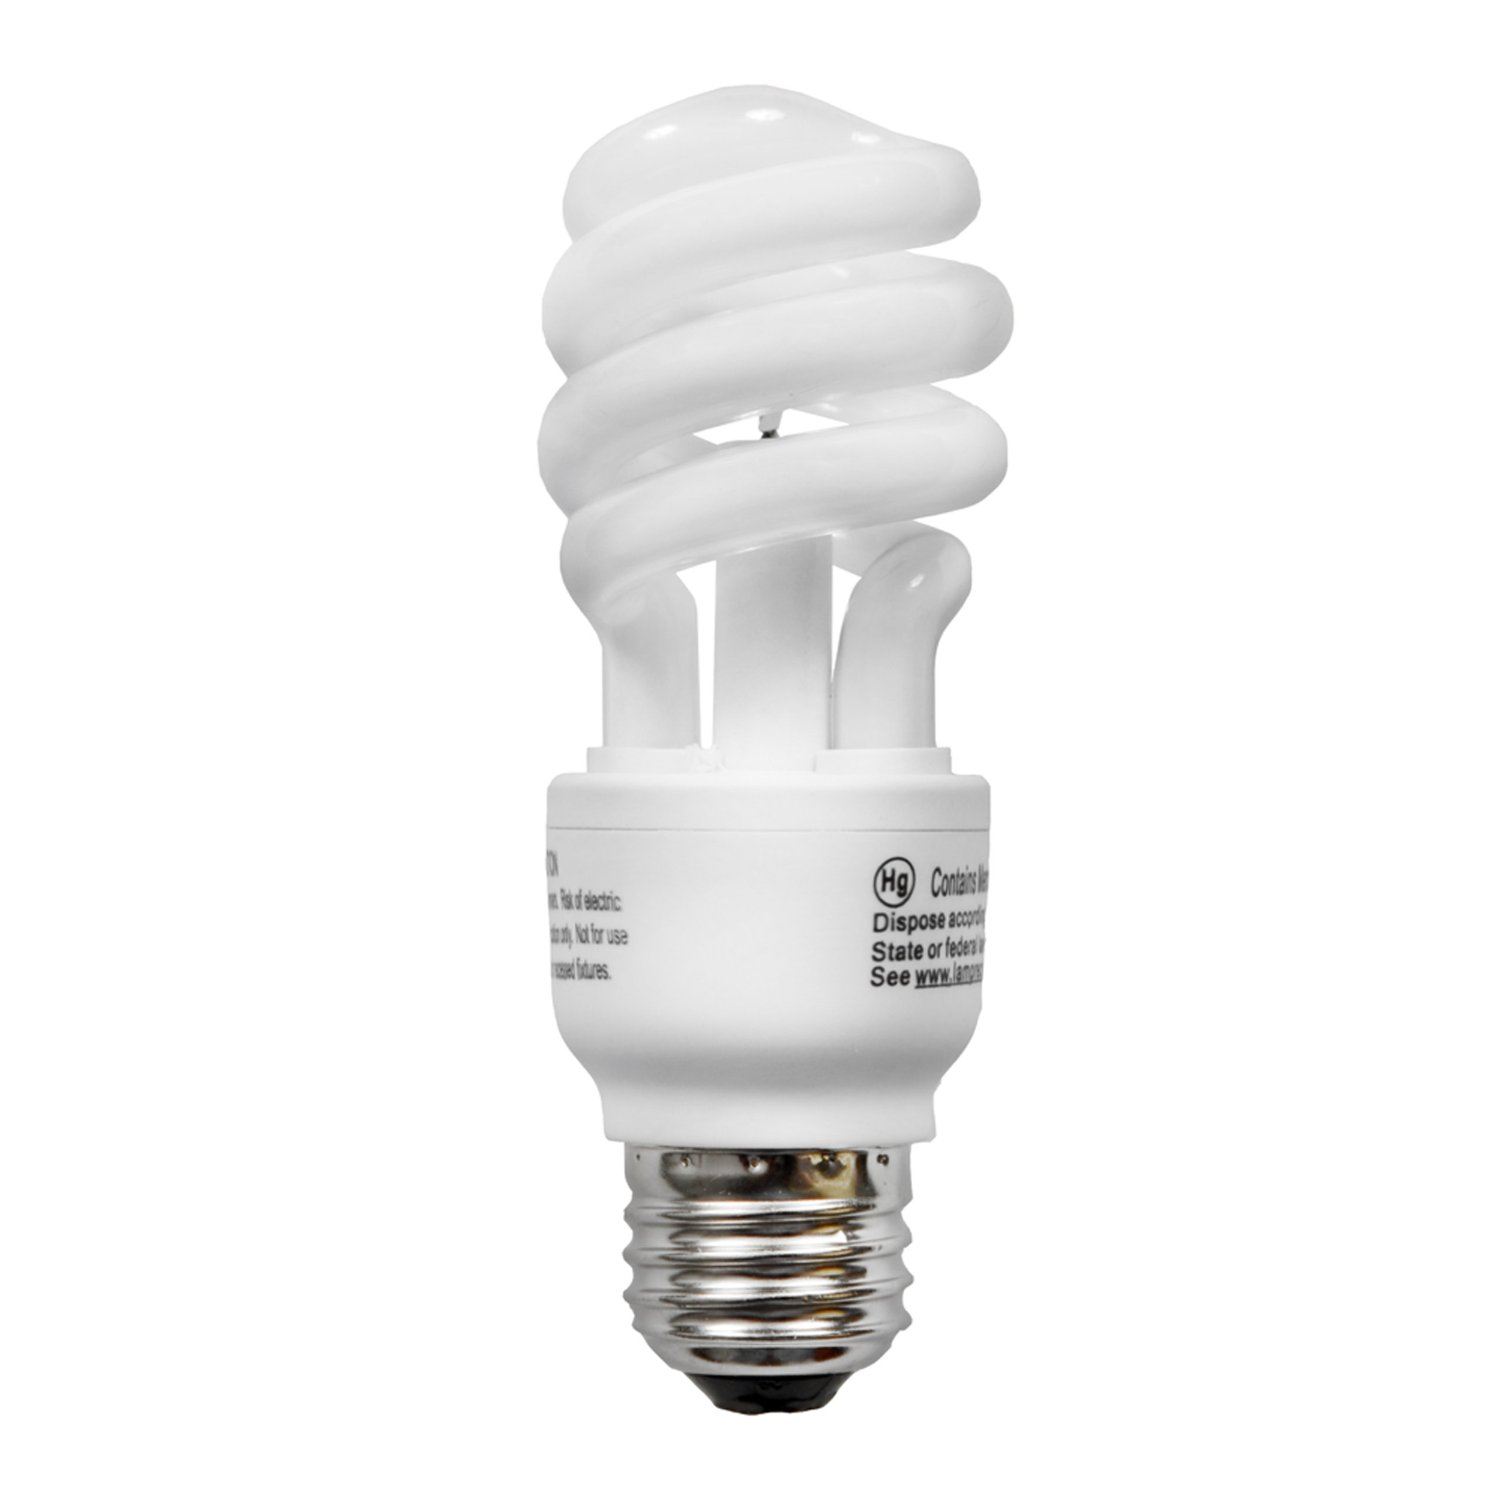 Eco friendly lighting solutions for your home Fluorescent light bulb